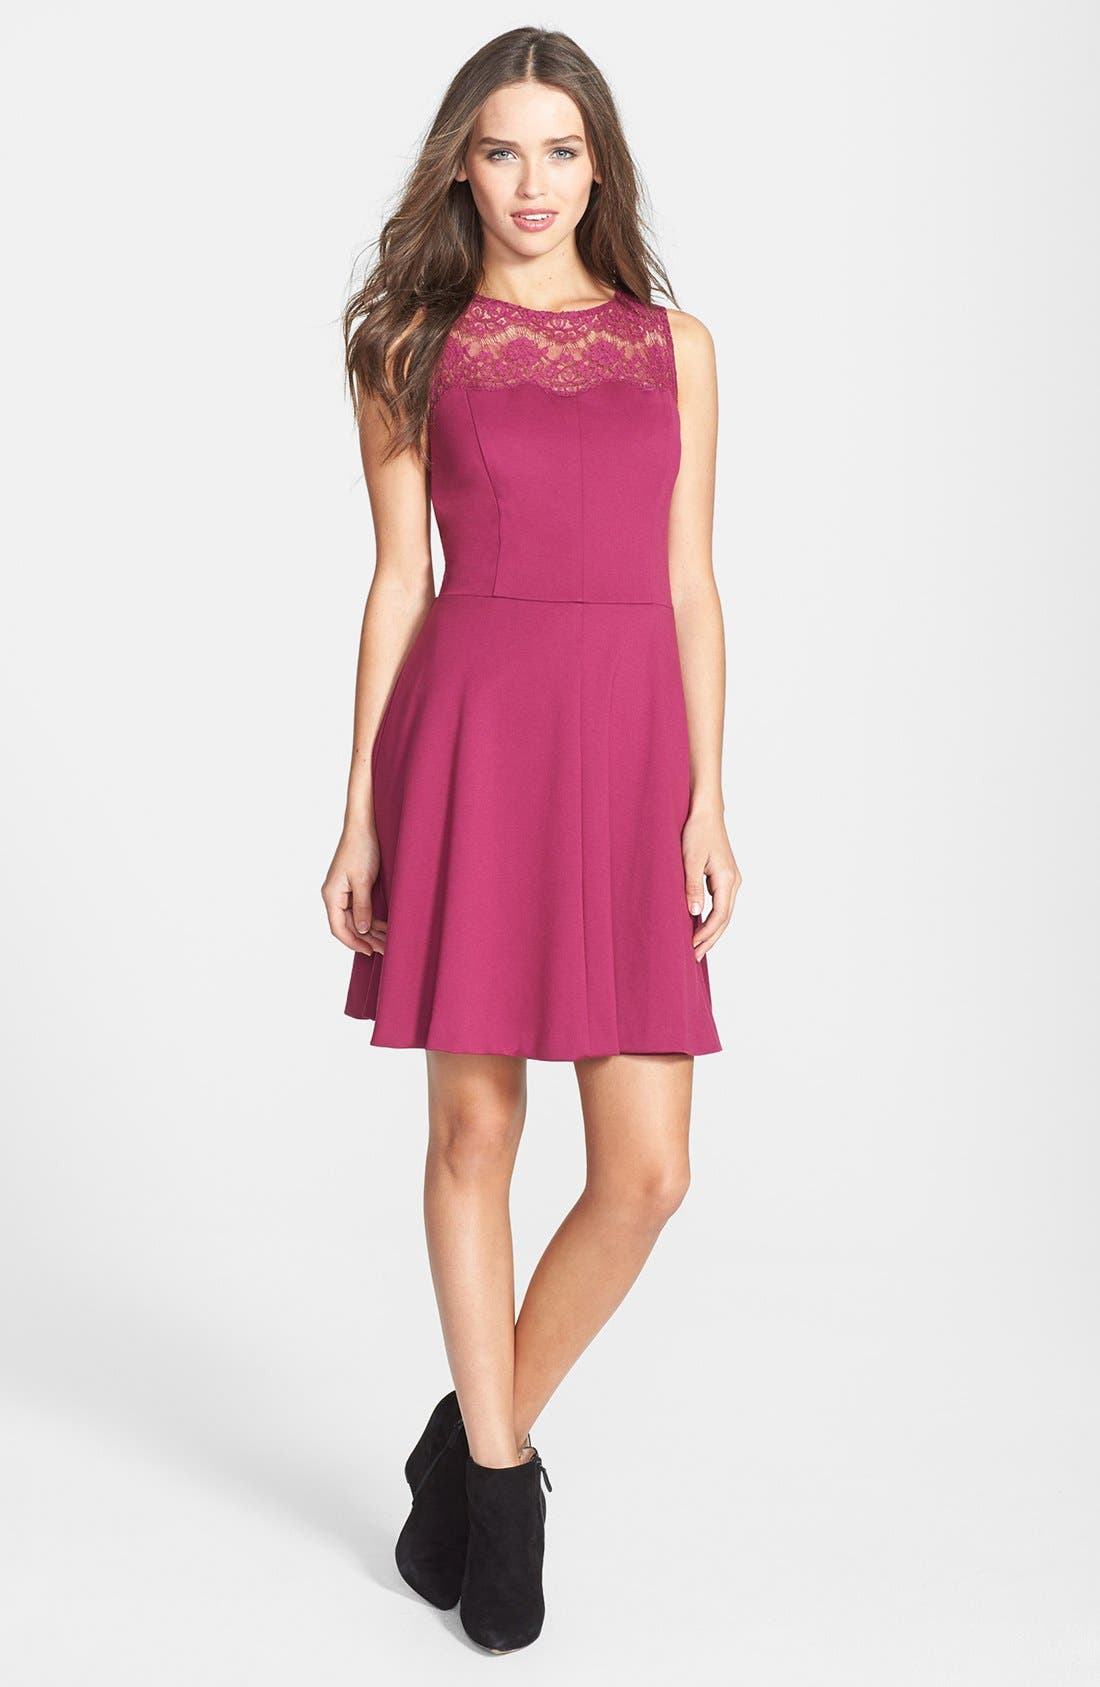 Alternate Image 1 Selected - Jessica Simpson Lace Yoke Ponte Fit & Flare Dress